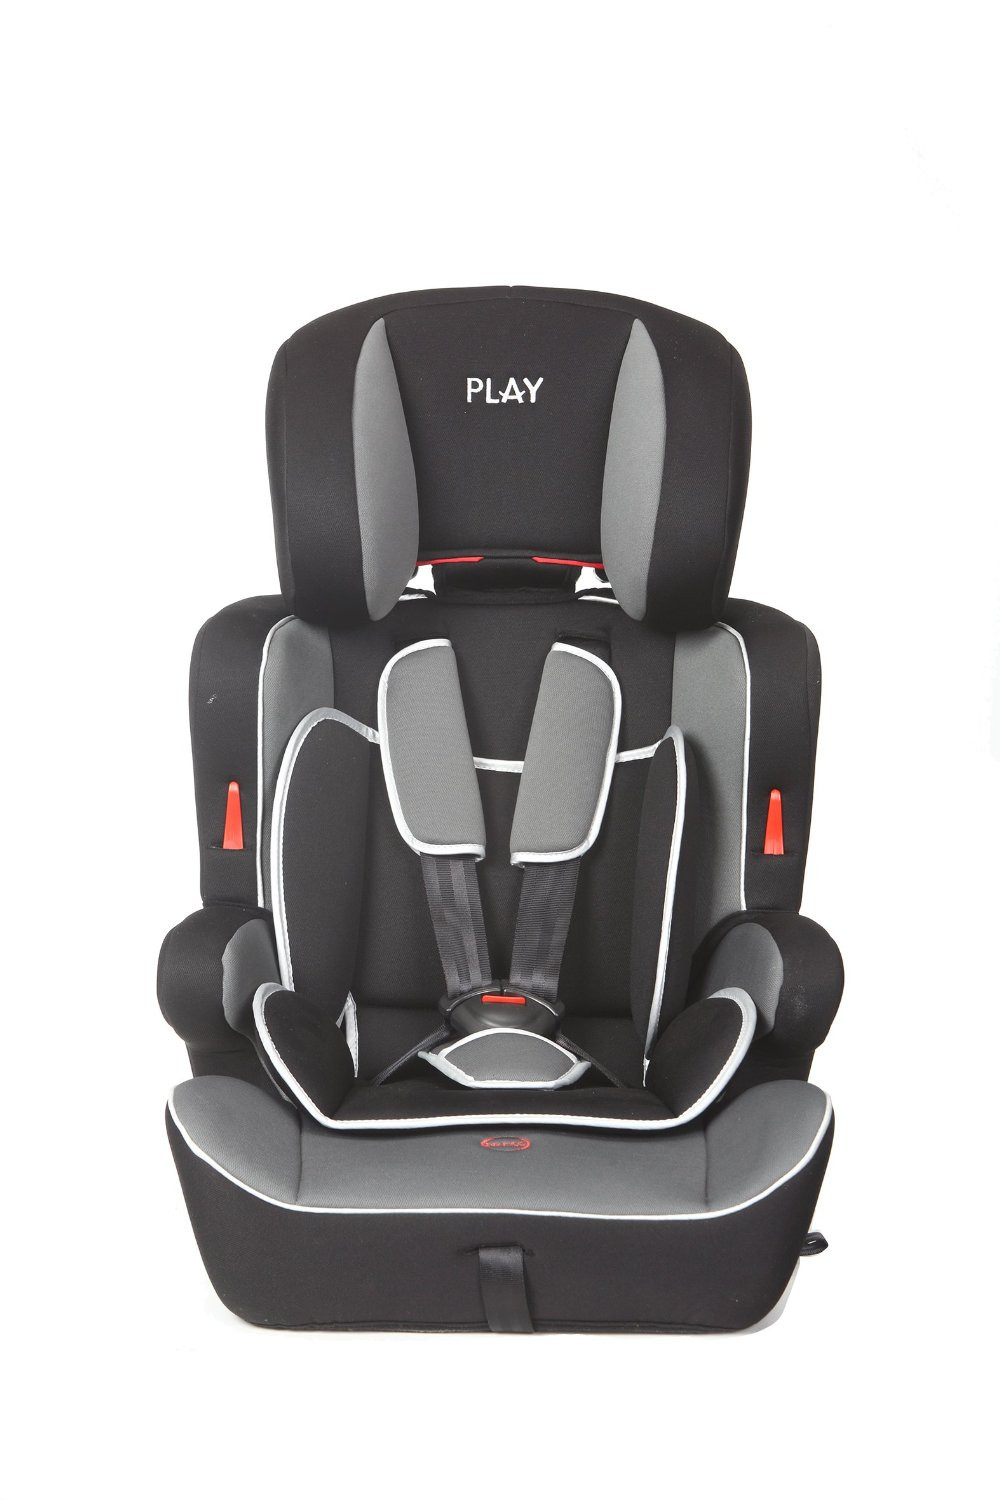 Silla de coche play safe ten grupo 1 2 3 casualplay opiniones - Silla 1 2 3 reclinable ...